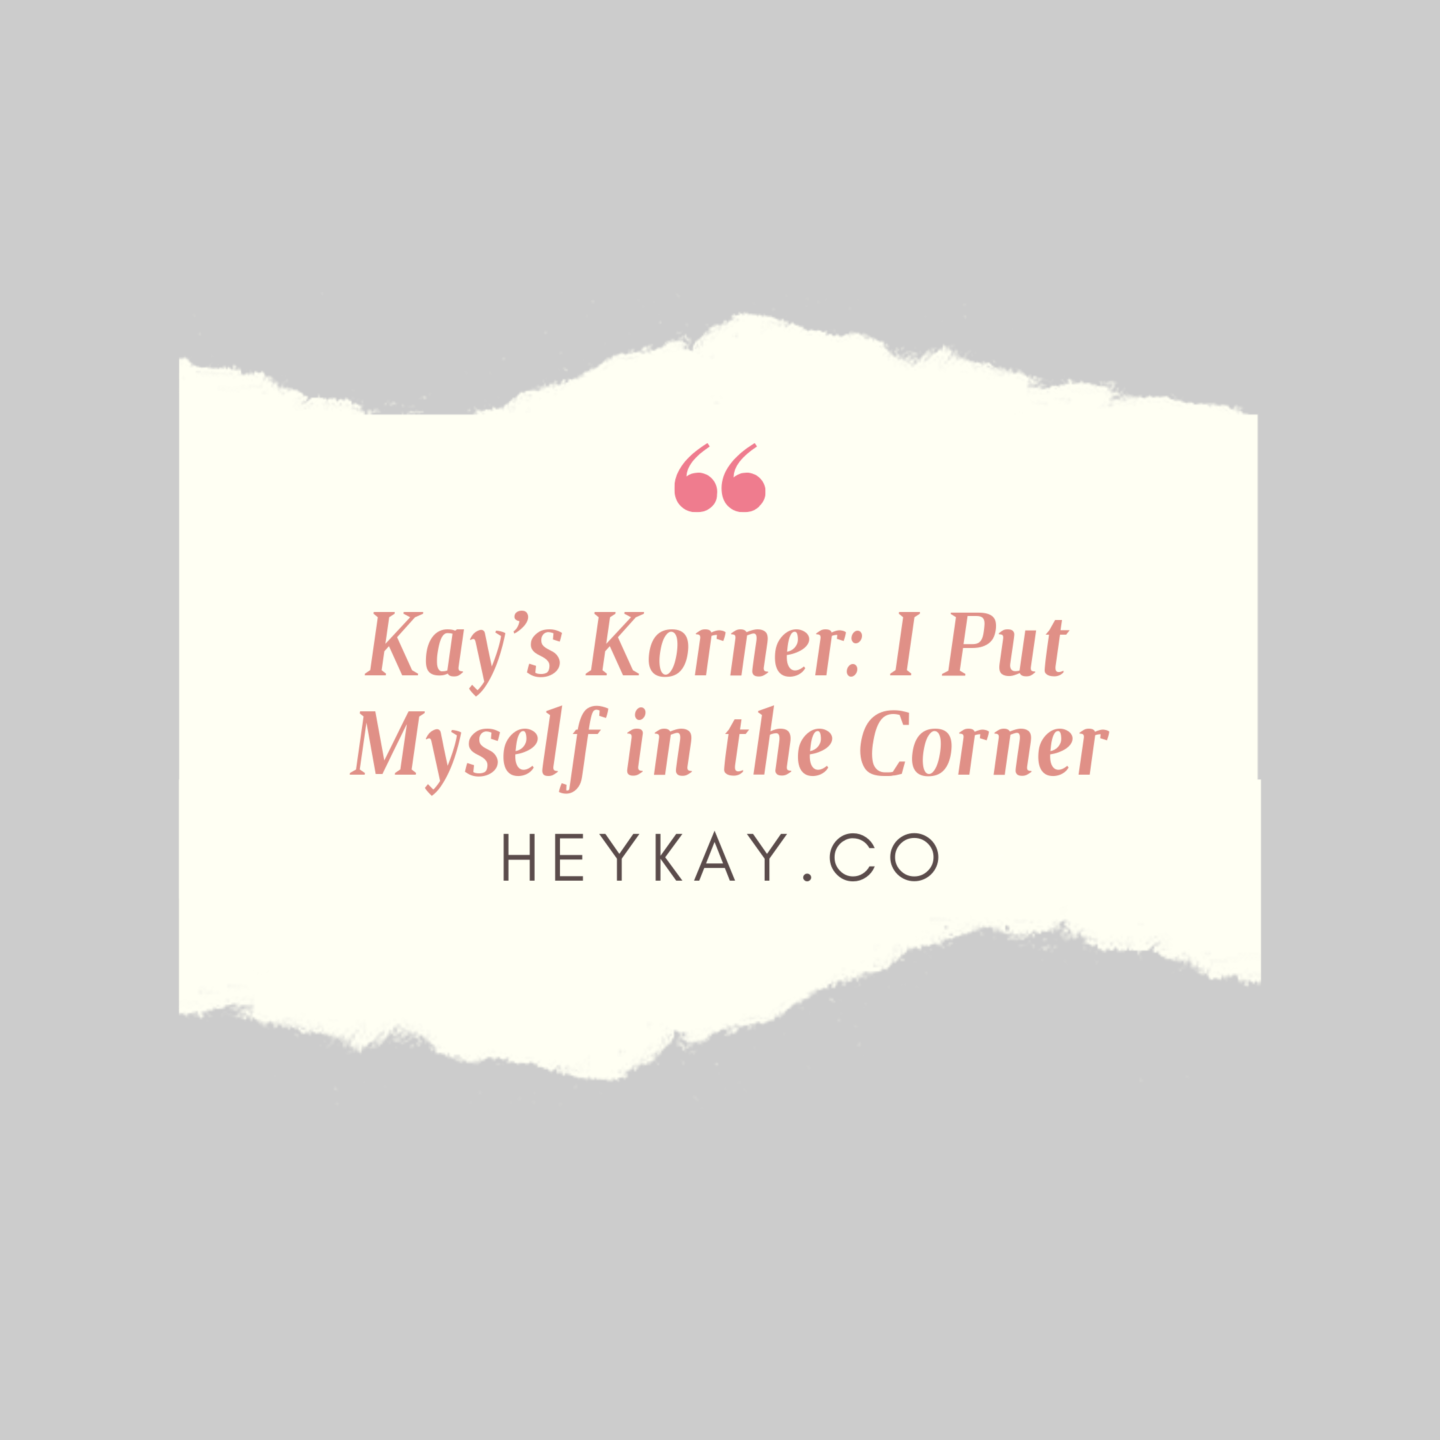 Kay's Korner: I Put Myself in the Corner